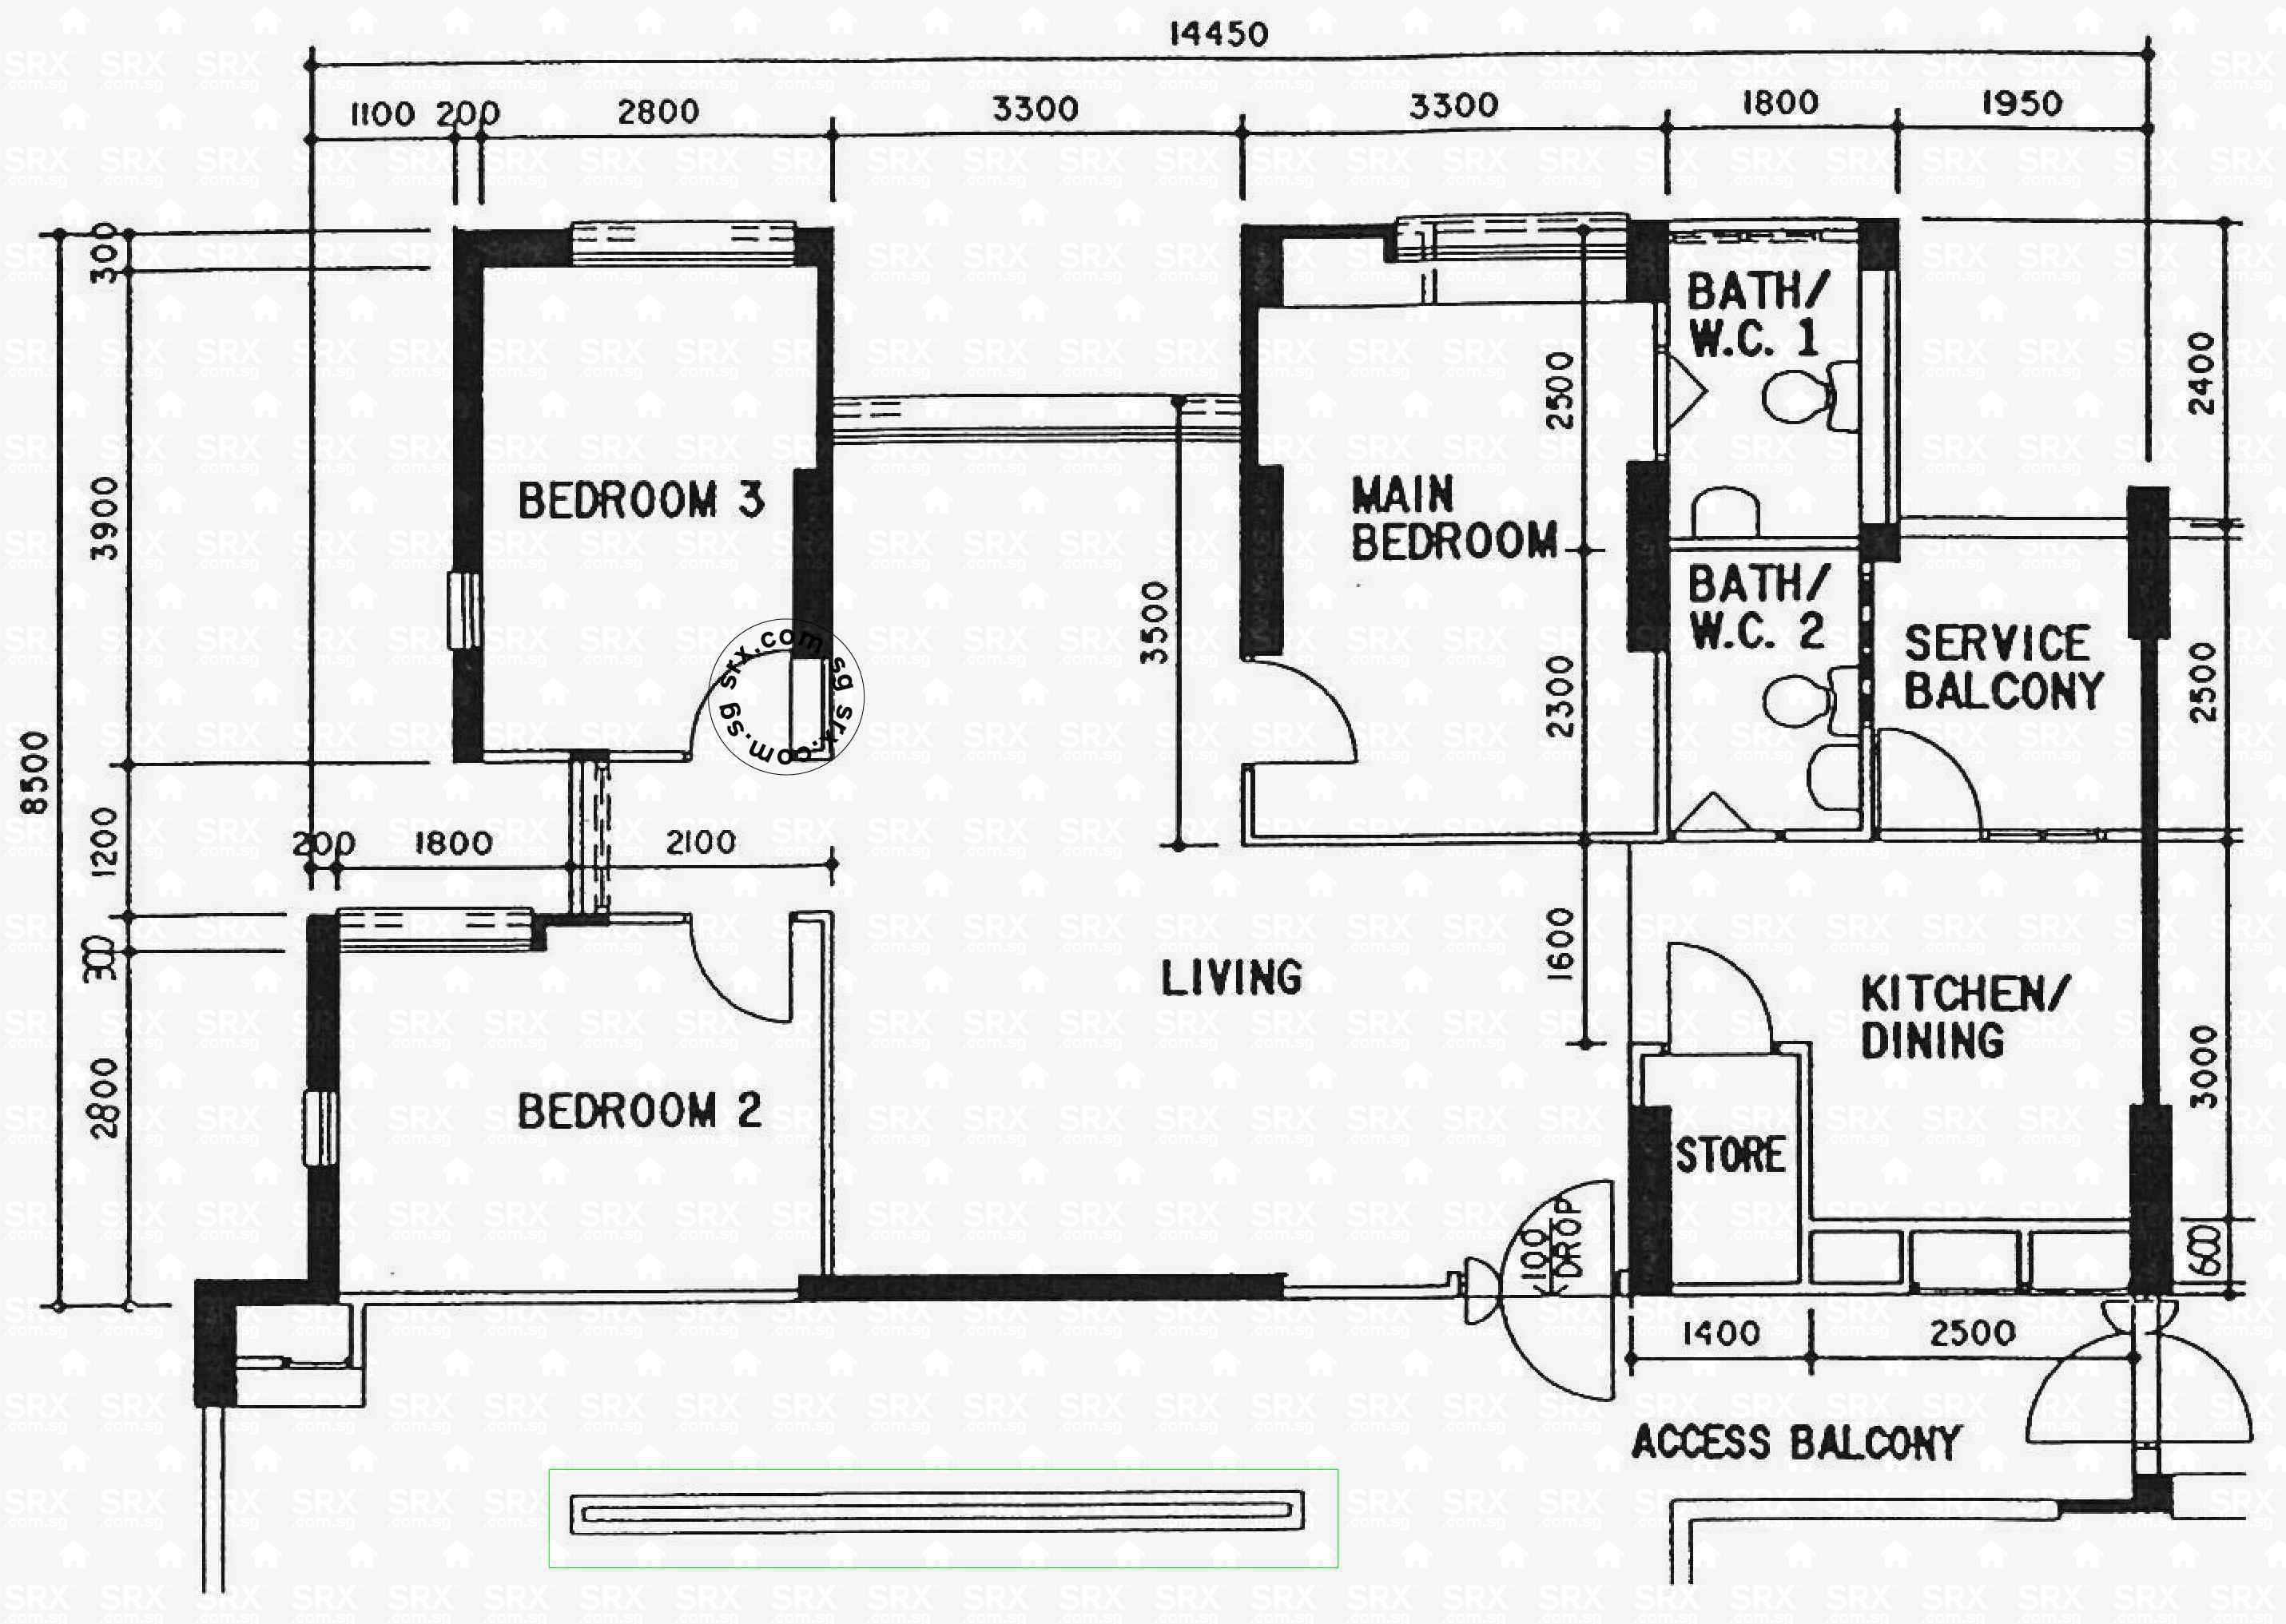 Floor plans for 501 jelapang road s 670501 hdb details for 501 plan